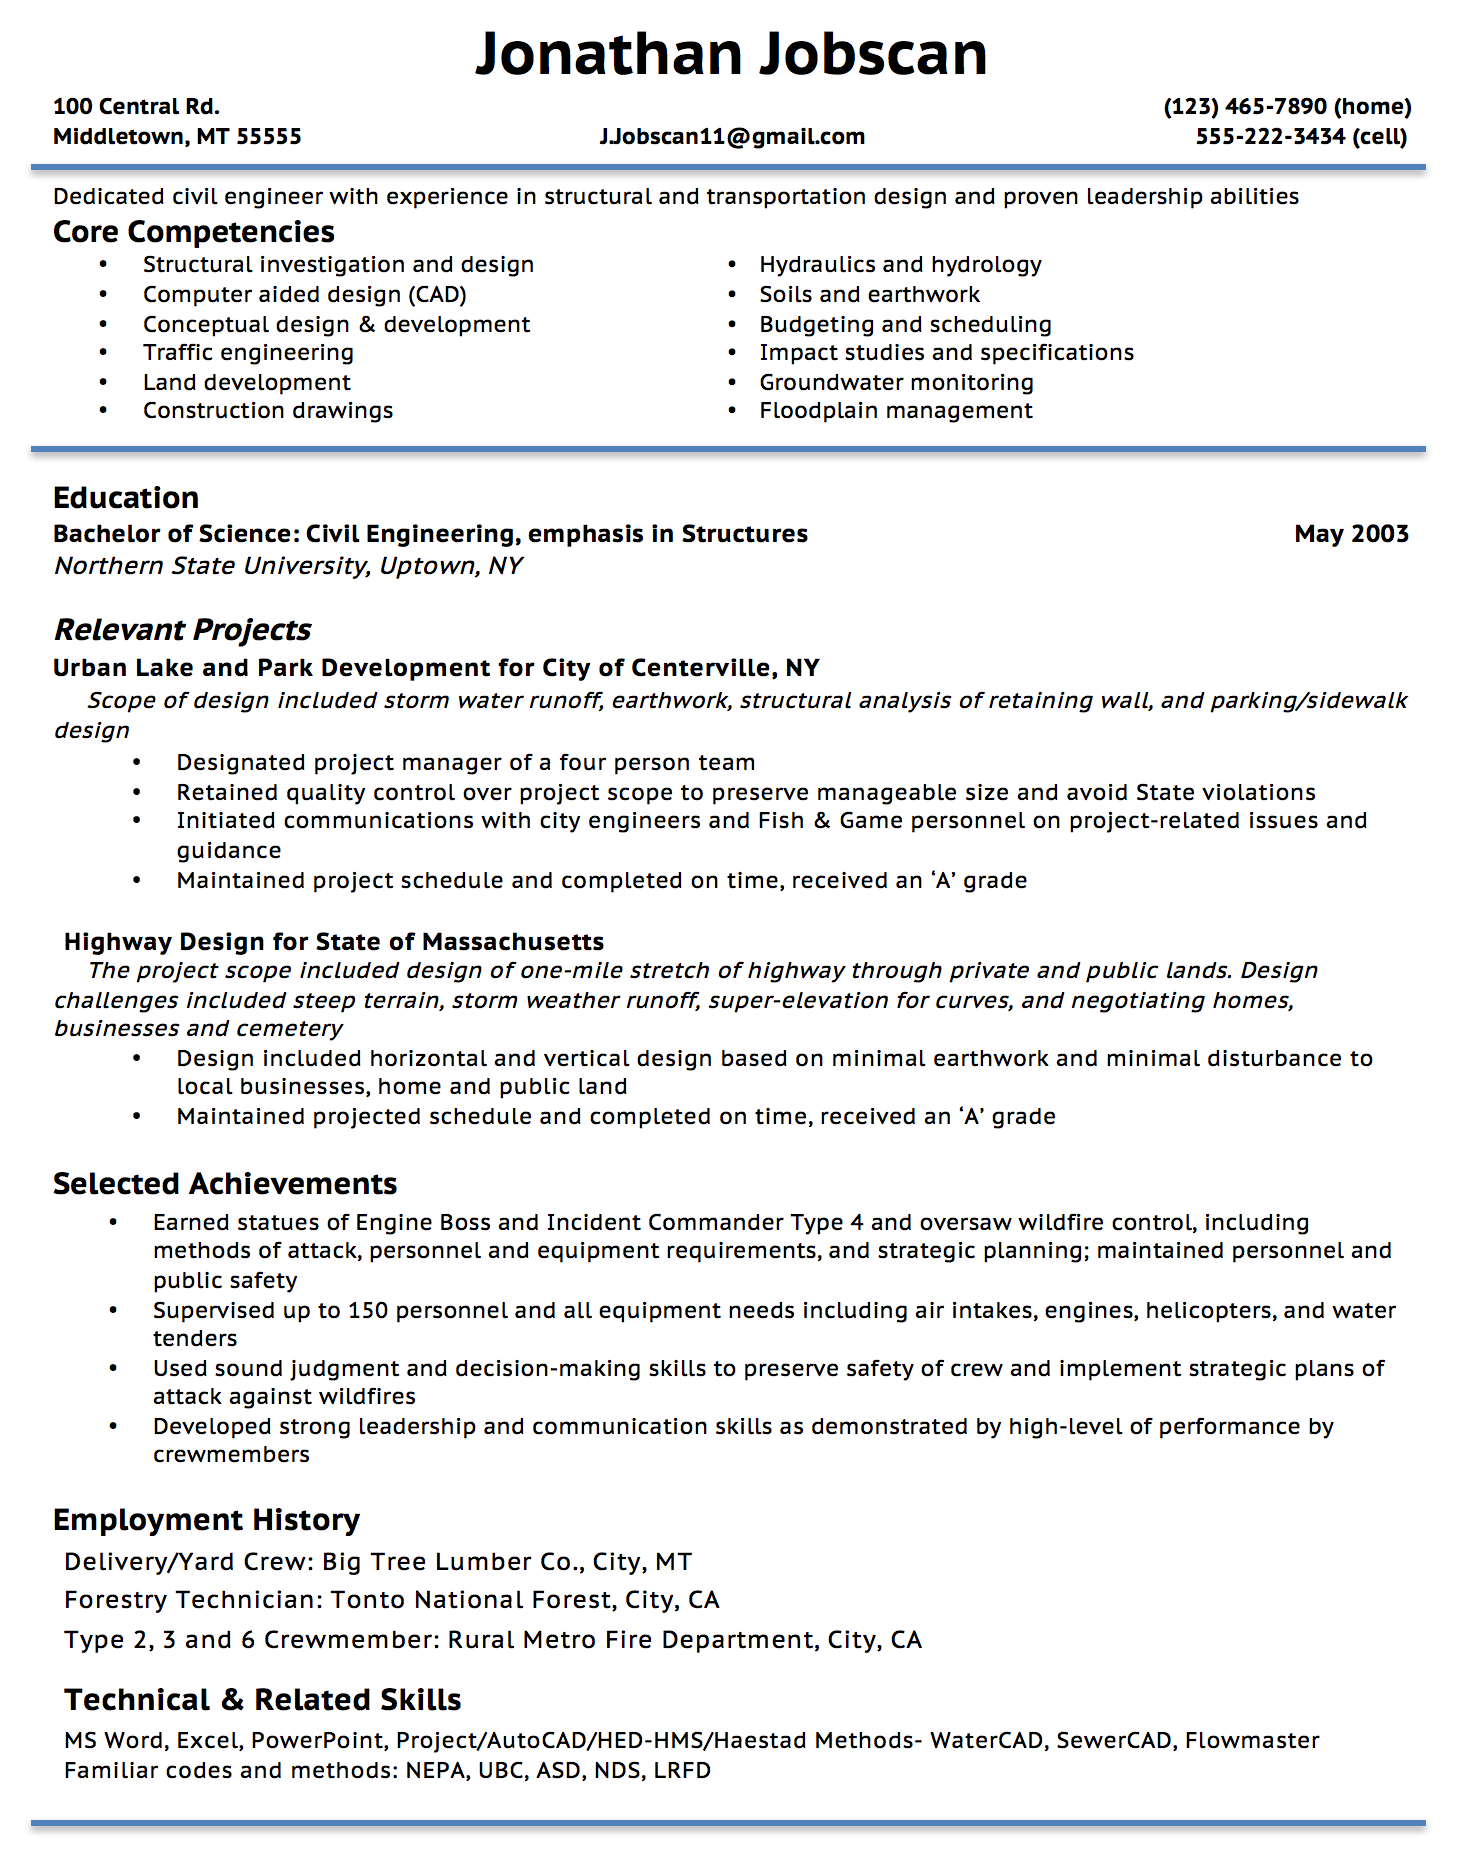 Opposenewapstandardsus  Mesmerizing Resume Writing Guide  Jobscan With Engaging Example Of A Functional Resume Format With Cool How To Write A General Resume Also Sales Associate Resume Samples In Addition Wall Street Resume And Job Resume Layout As Well As Resume Subject Line Additionally How Do You Type A Resume From Jobscanco With Opposenewapstandardsus  Engaging Resume Writing Guide  Jobscan With Cool Example Of A Functional Resume Format And Mesmerizing How To Write A General Resume Also Sales Associate Resume Samples In Addition Wall Street Resume From Jobscanco